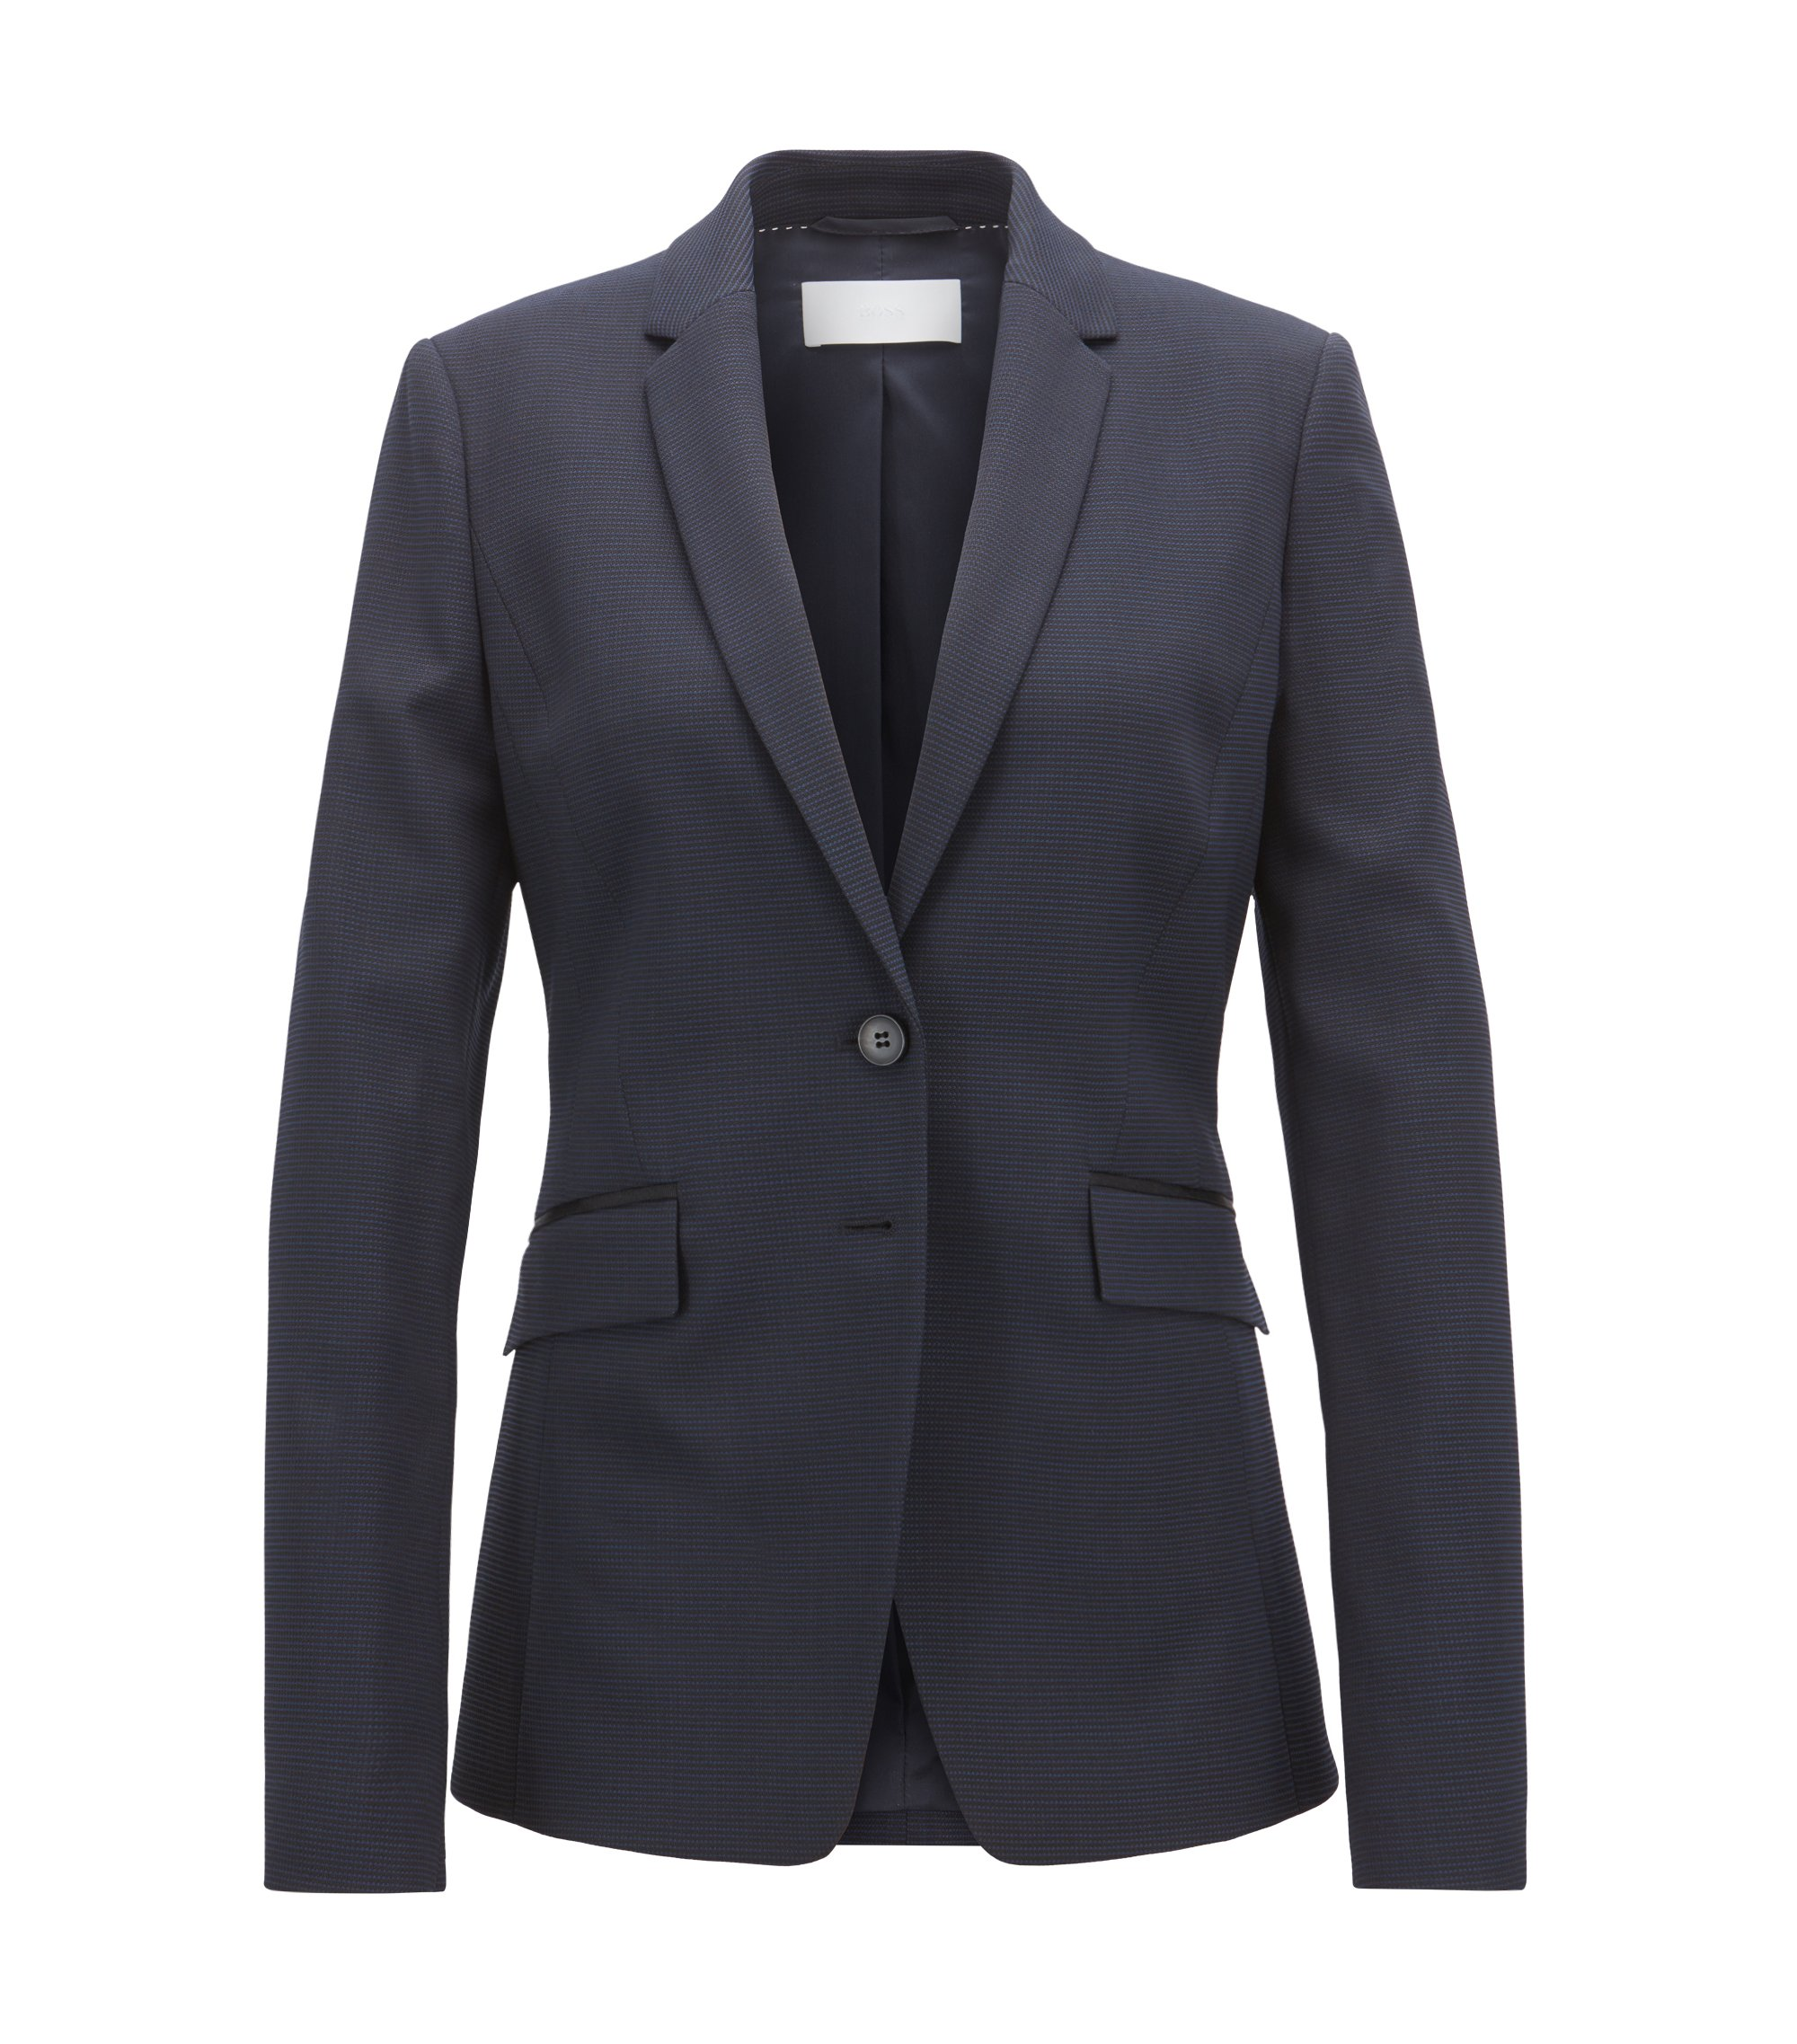 Regular-fit blazer in Italian stretch virgin wool, Patterned